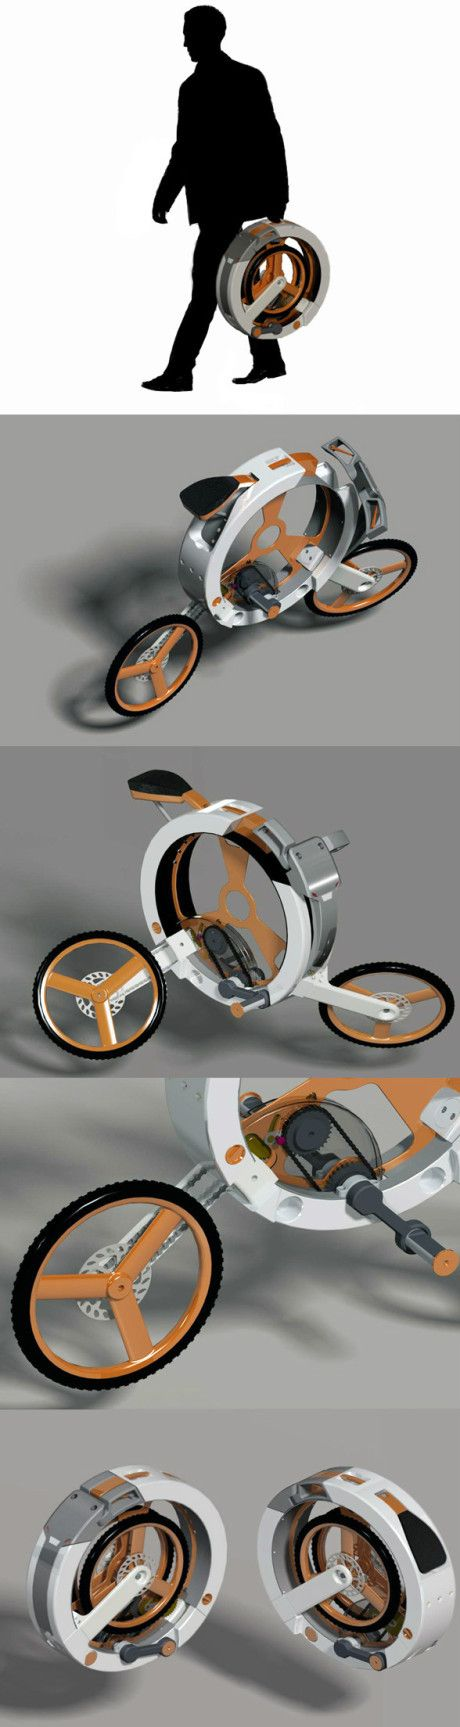 bike compacts into a circle for carry.